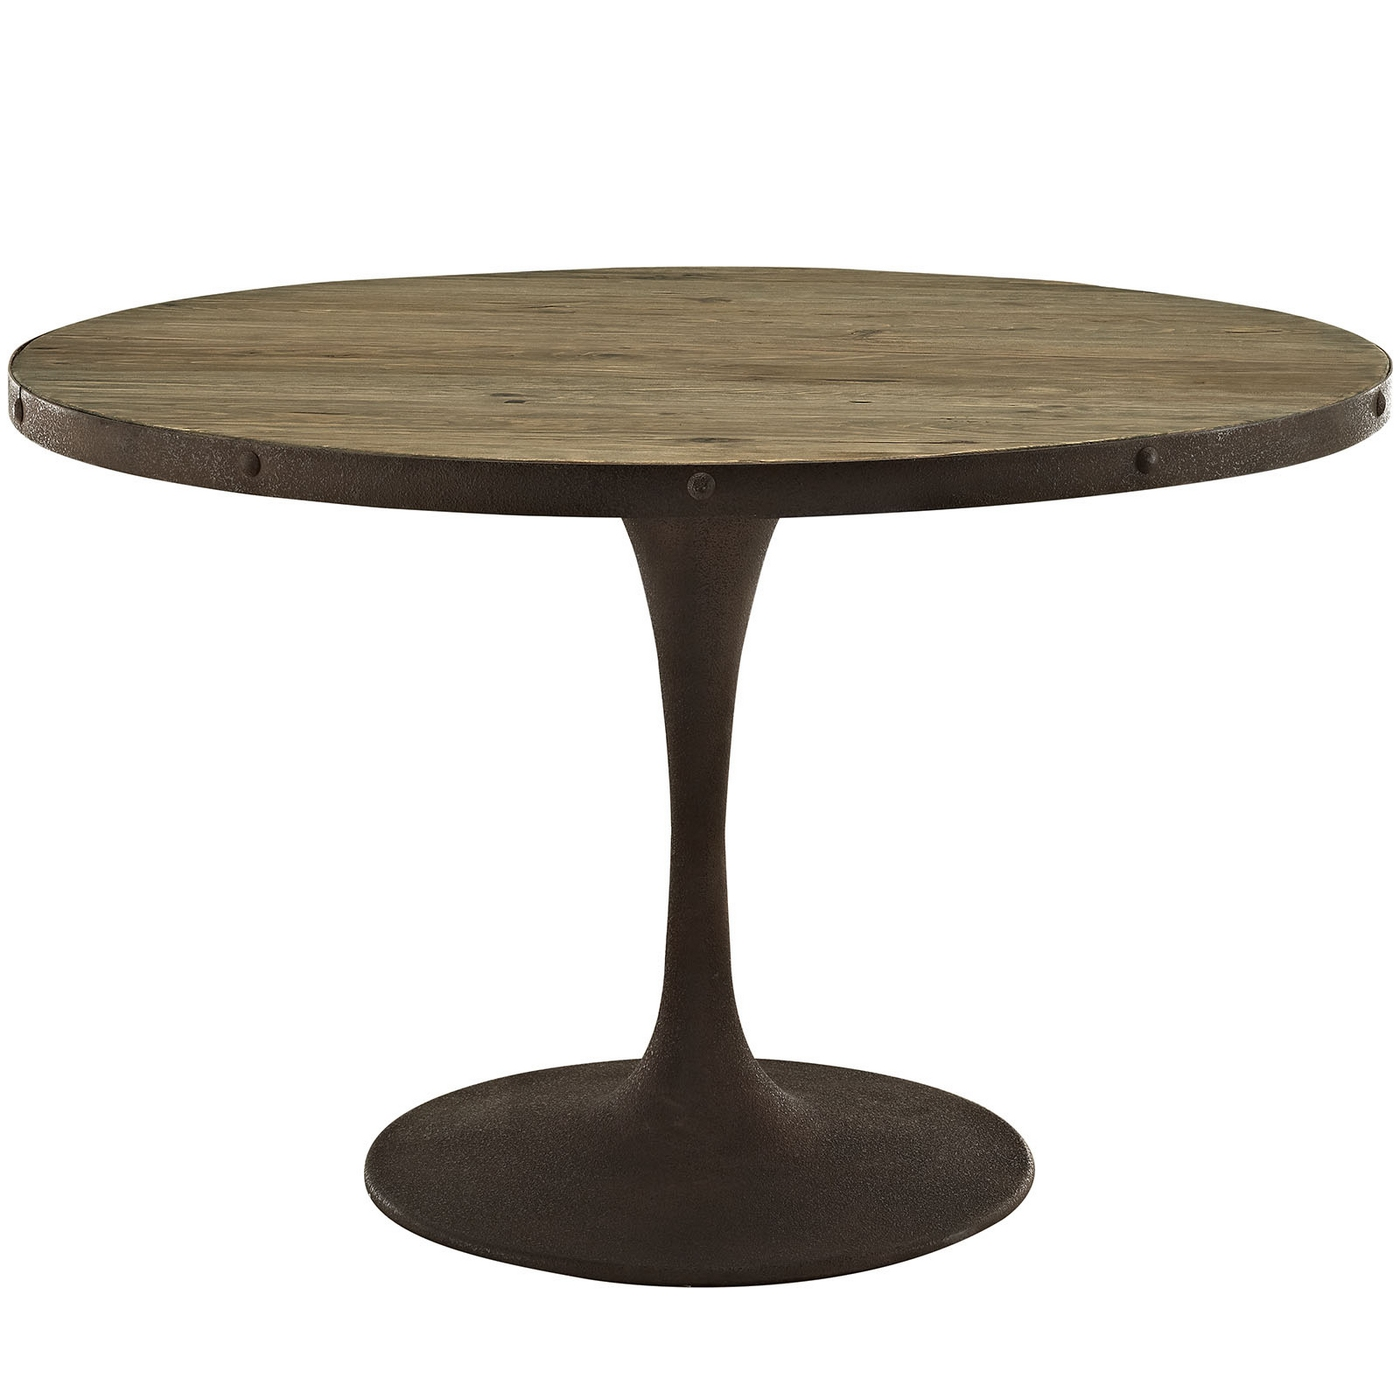 Drive Rustic 48 Quot Round Wood Top Dining Table W Iron